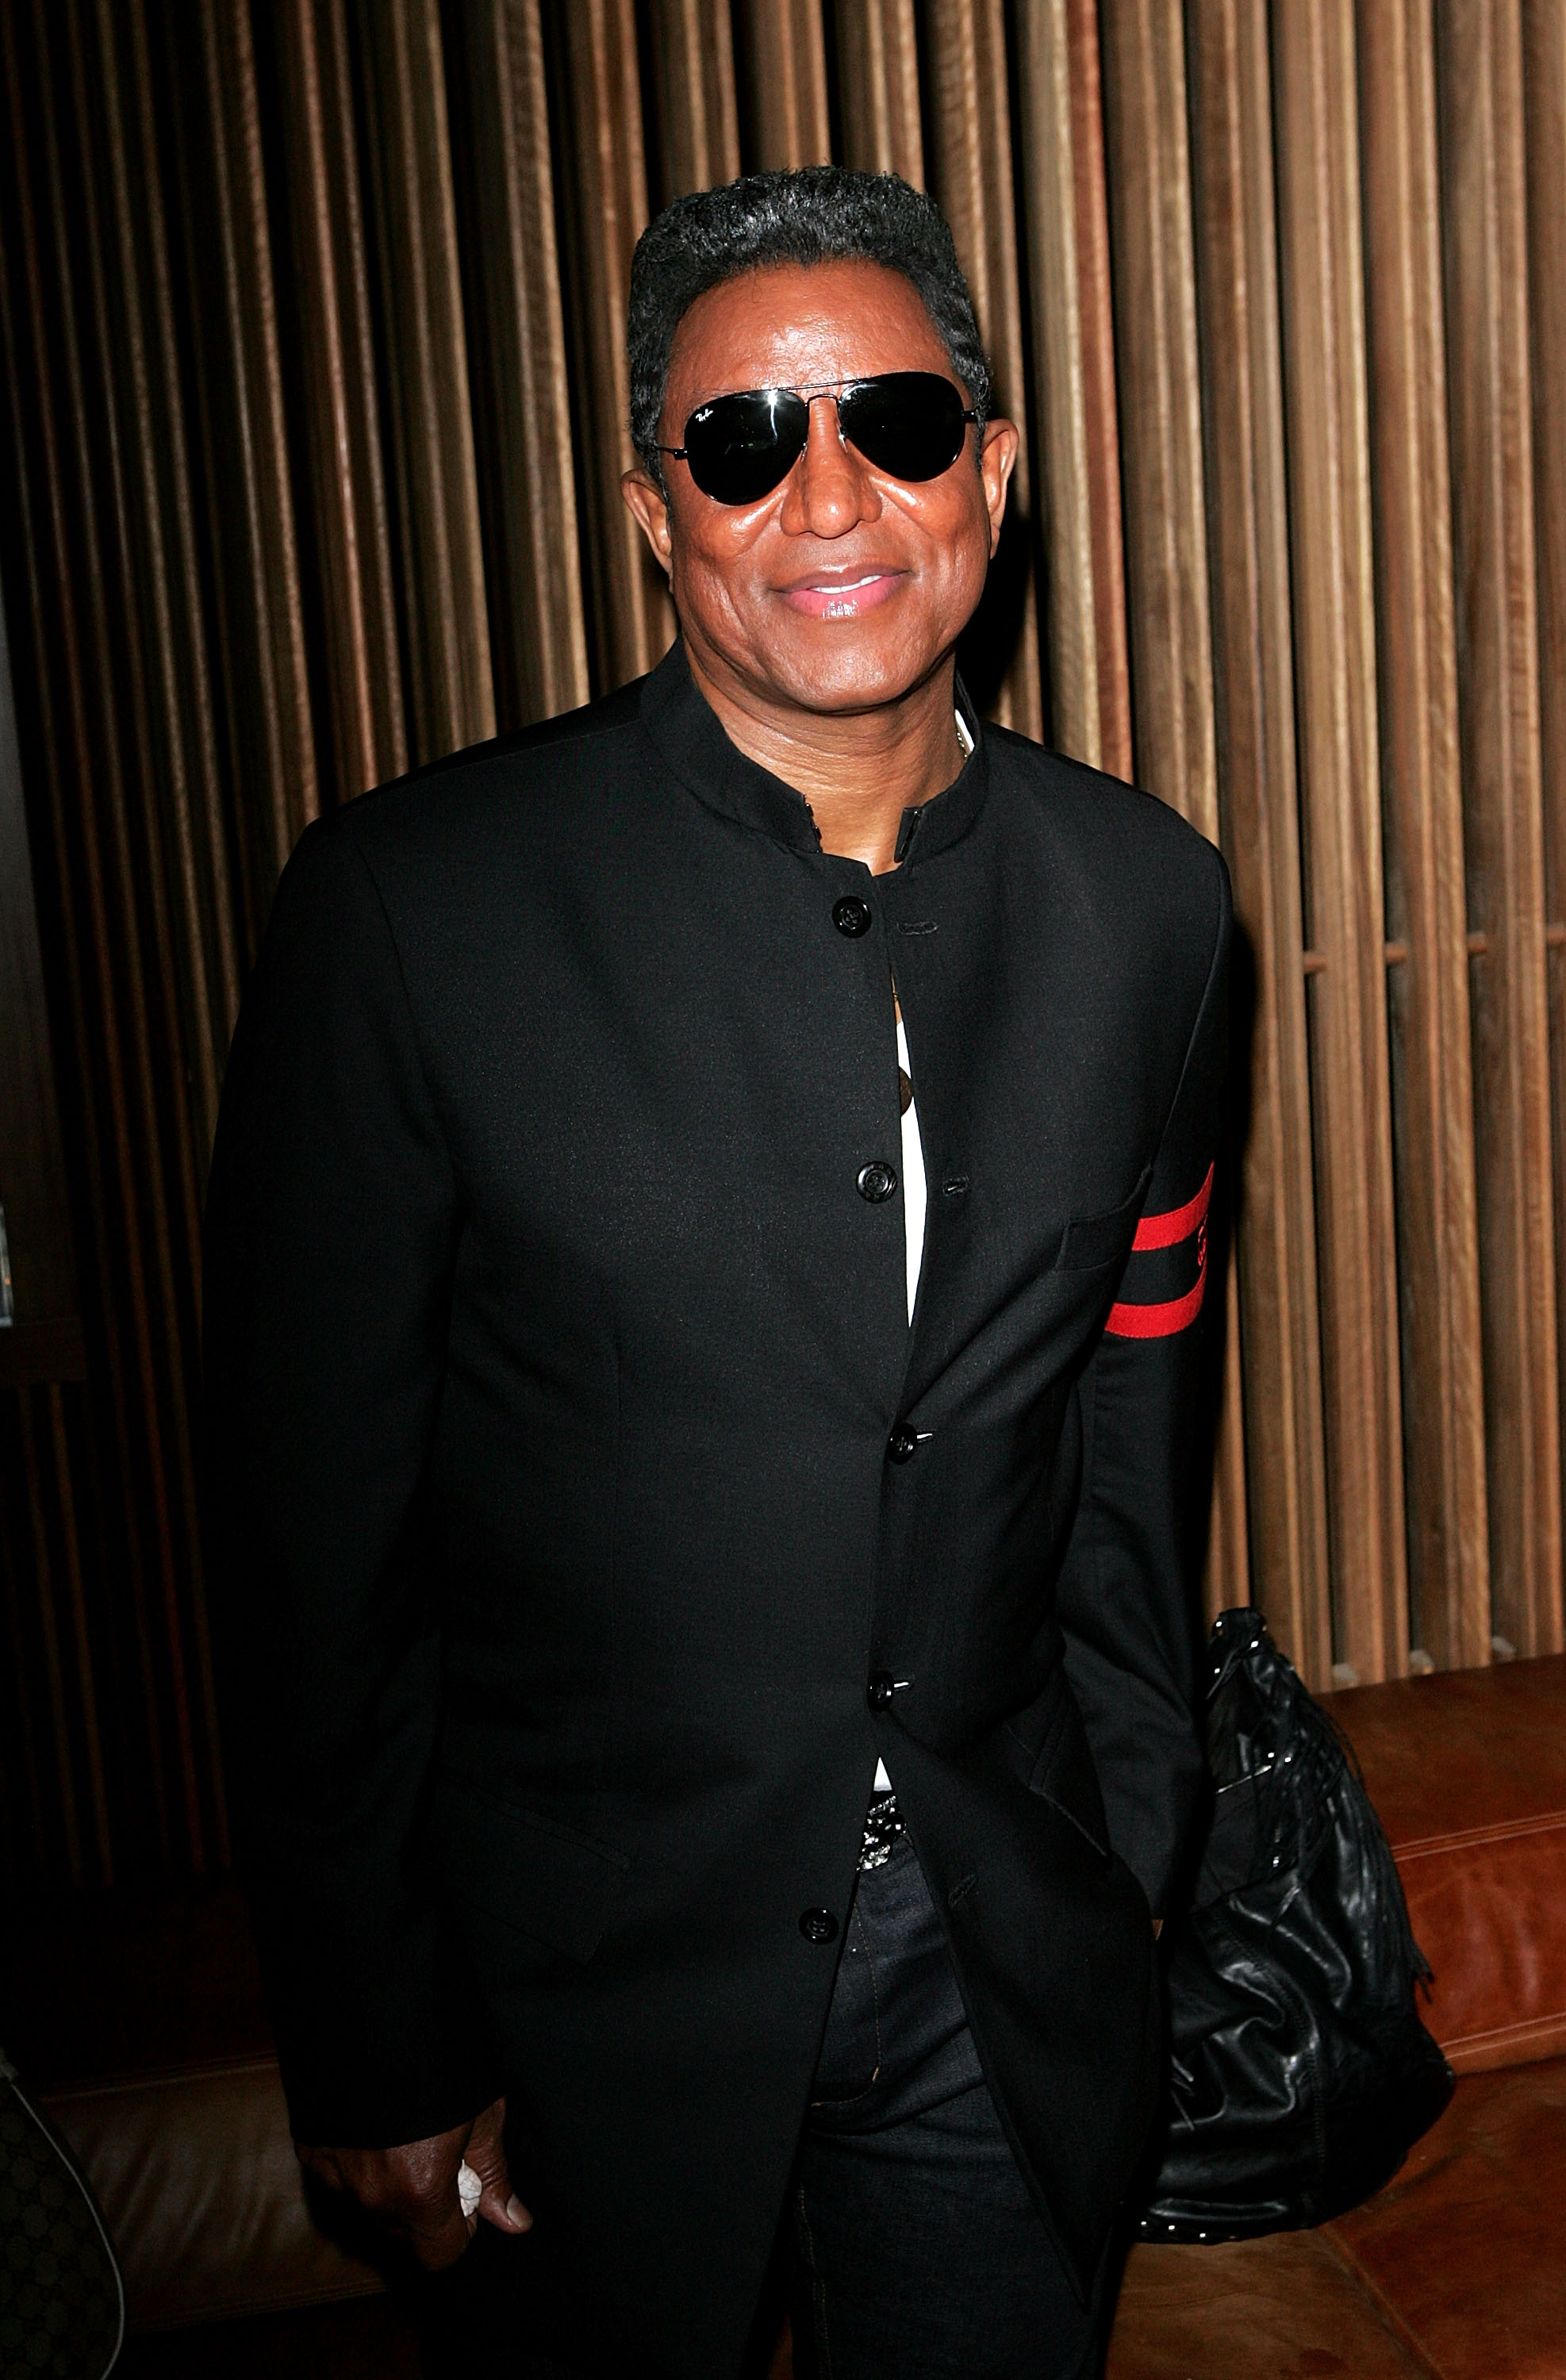 Jermaine Jackson. Image Credit: Getty Images